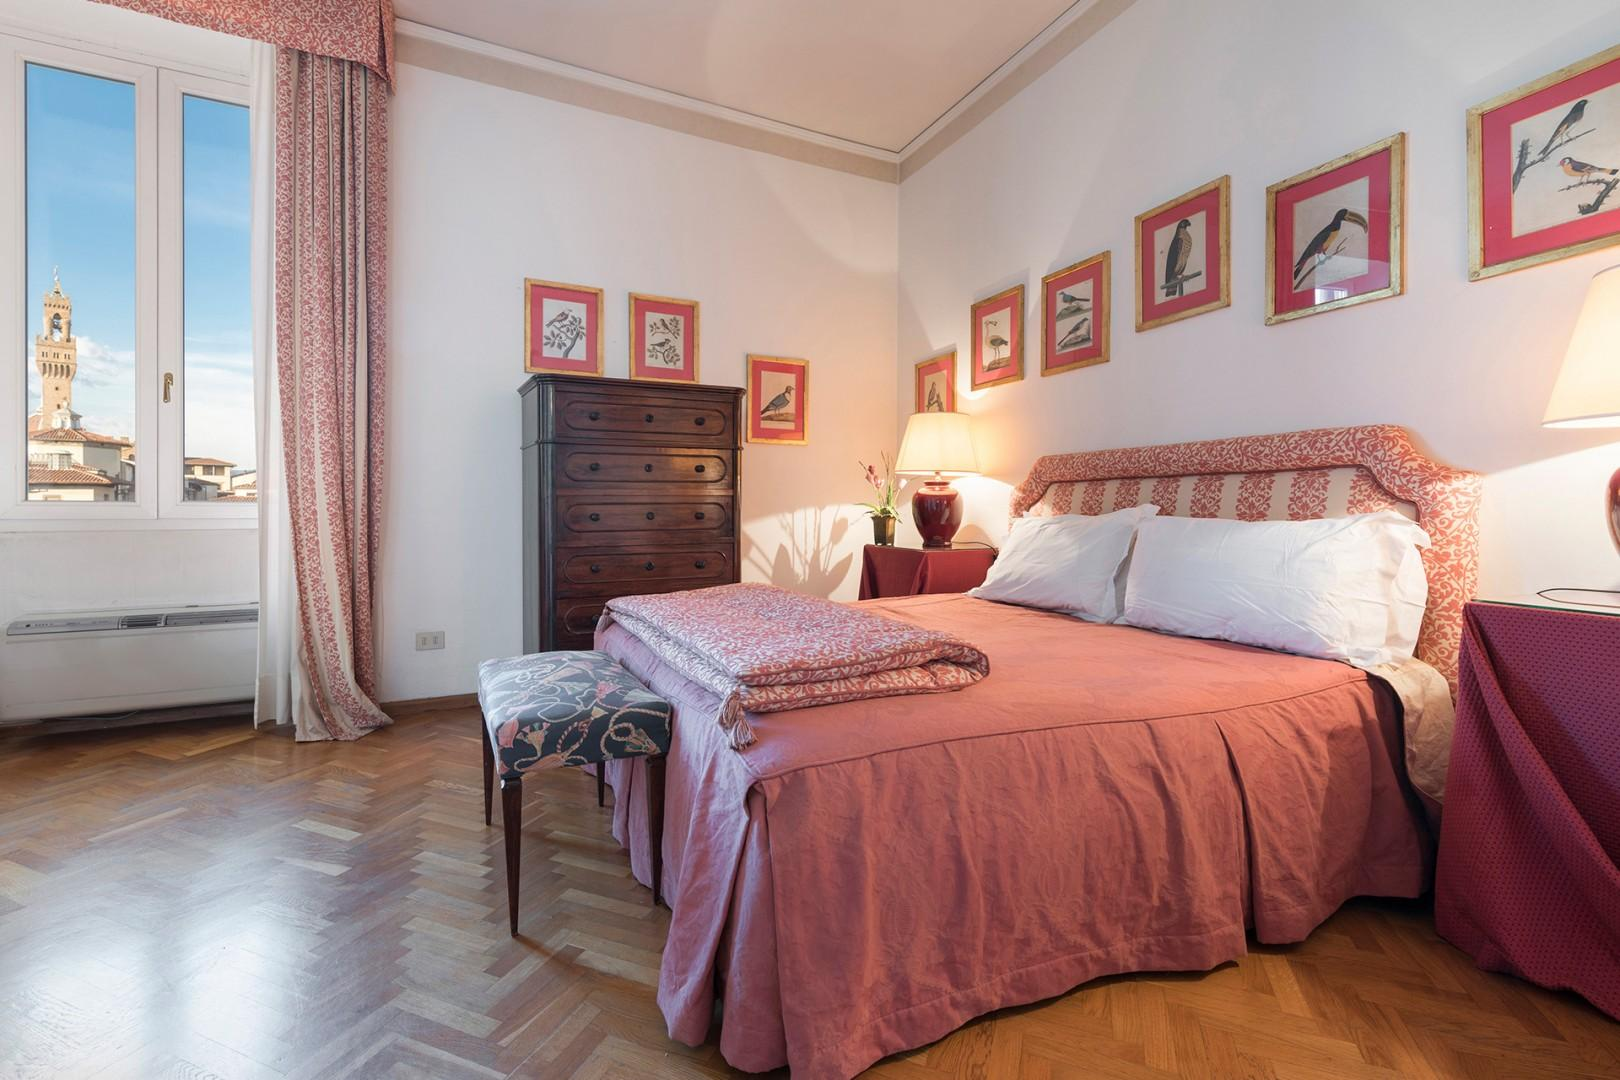 Bedroom 1 has beautiful Arno river views with a bed that can be split to form two beds.